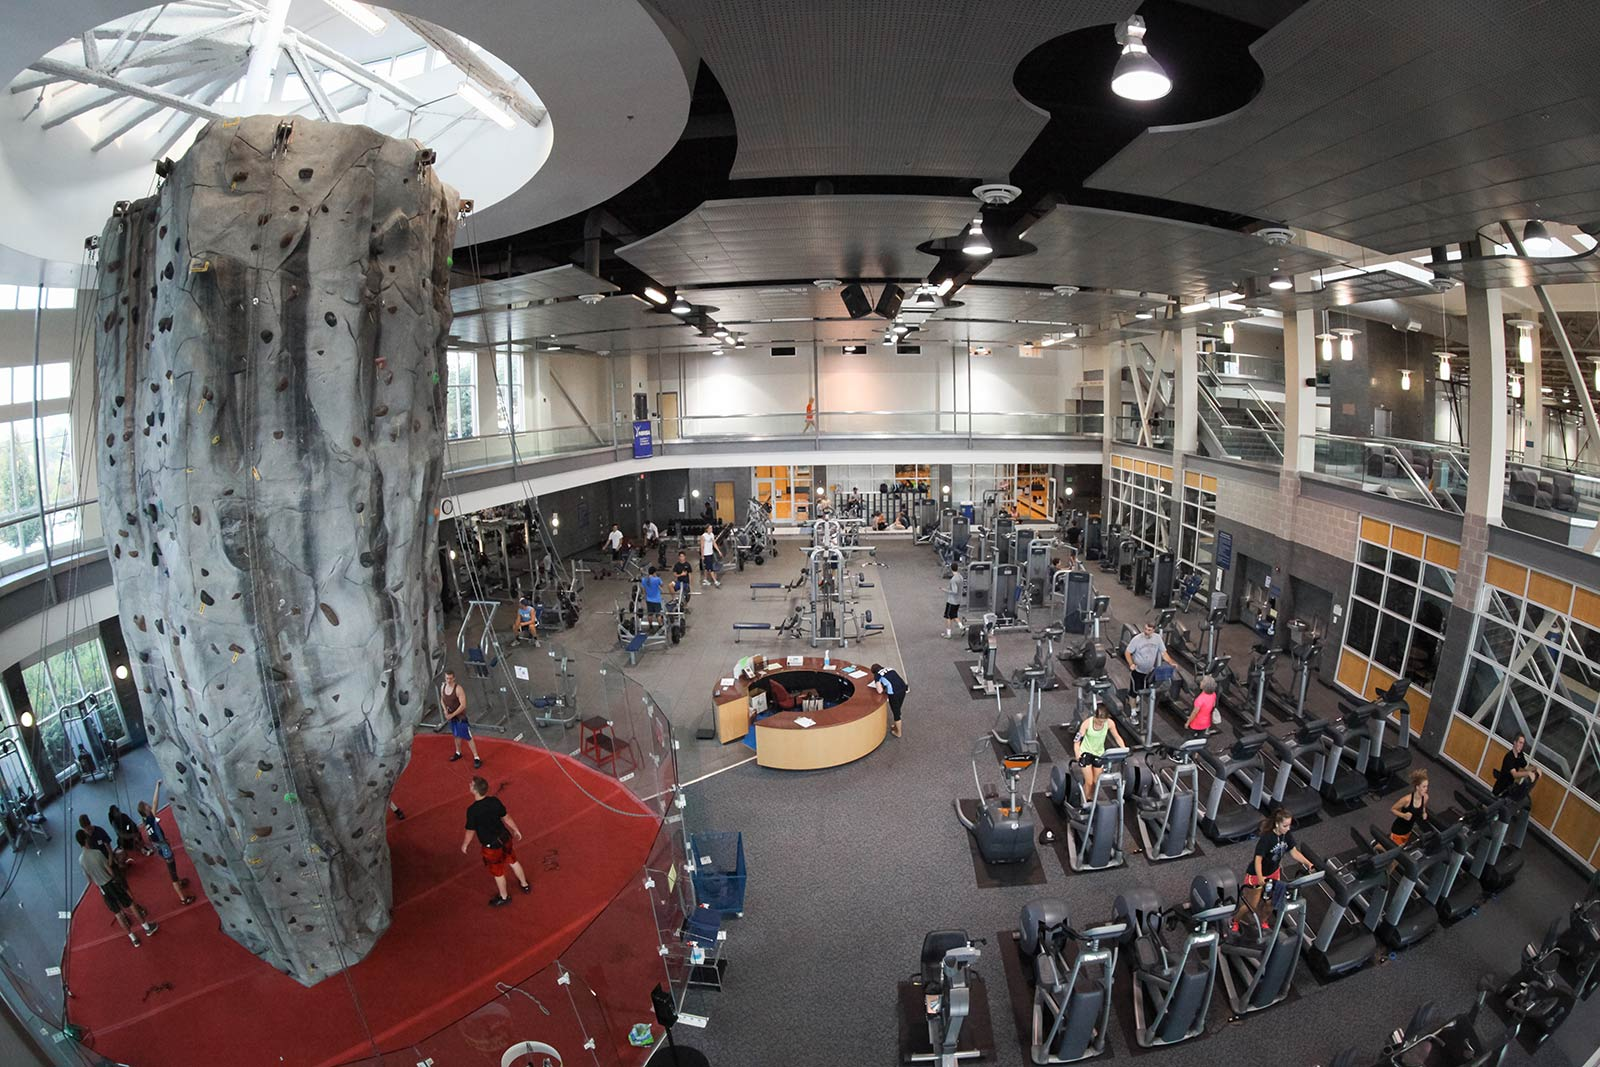 Physical fitness is an important aspect of student life. Our Health and Fitness Center features a 30-foot climbing wall, a two-court gymnasium, power-lifting room, group-fitness studio, two racquetball courts, an indoor track and more!